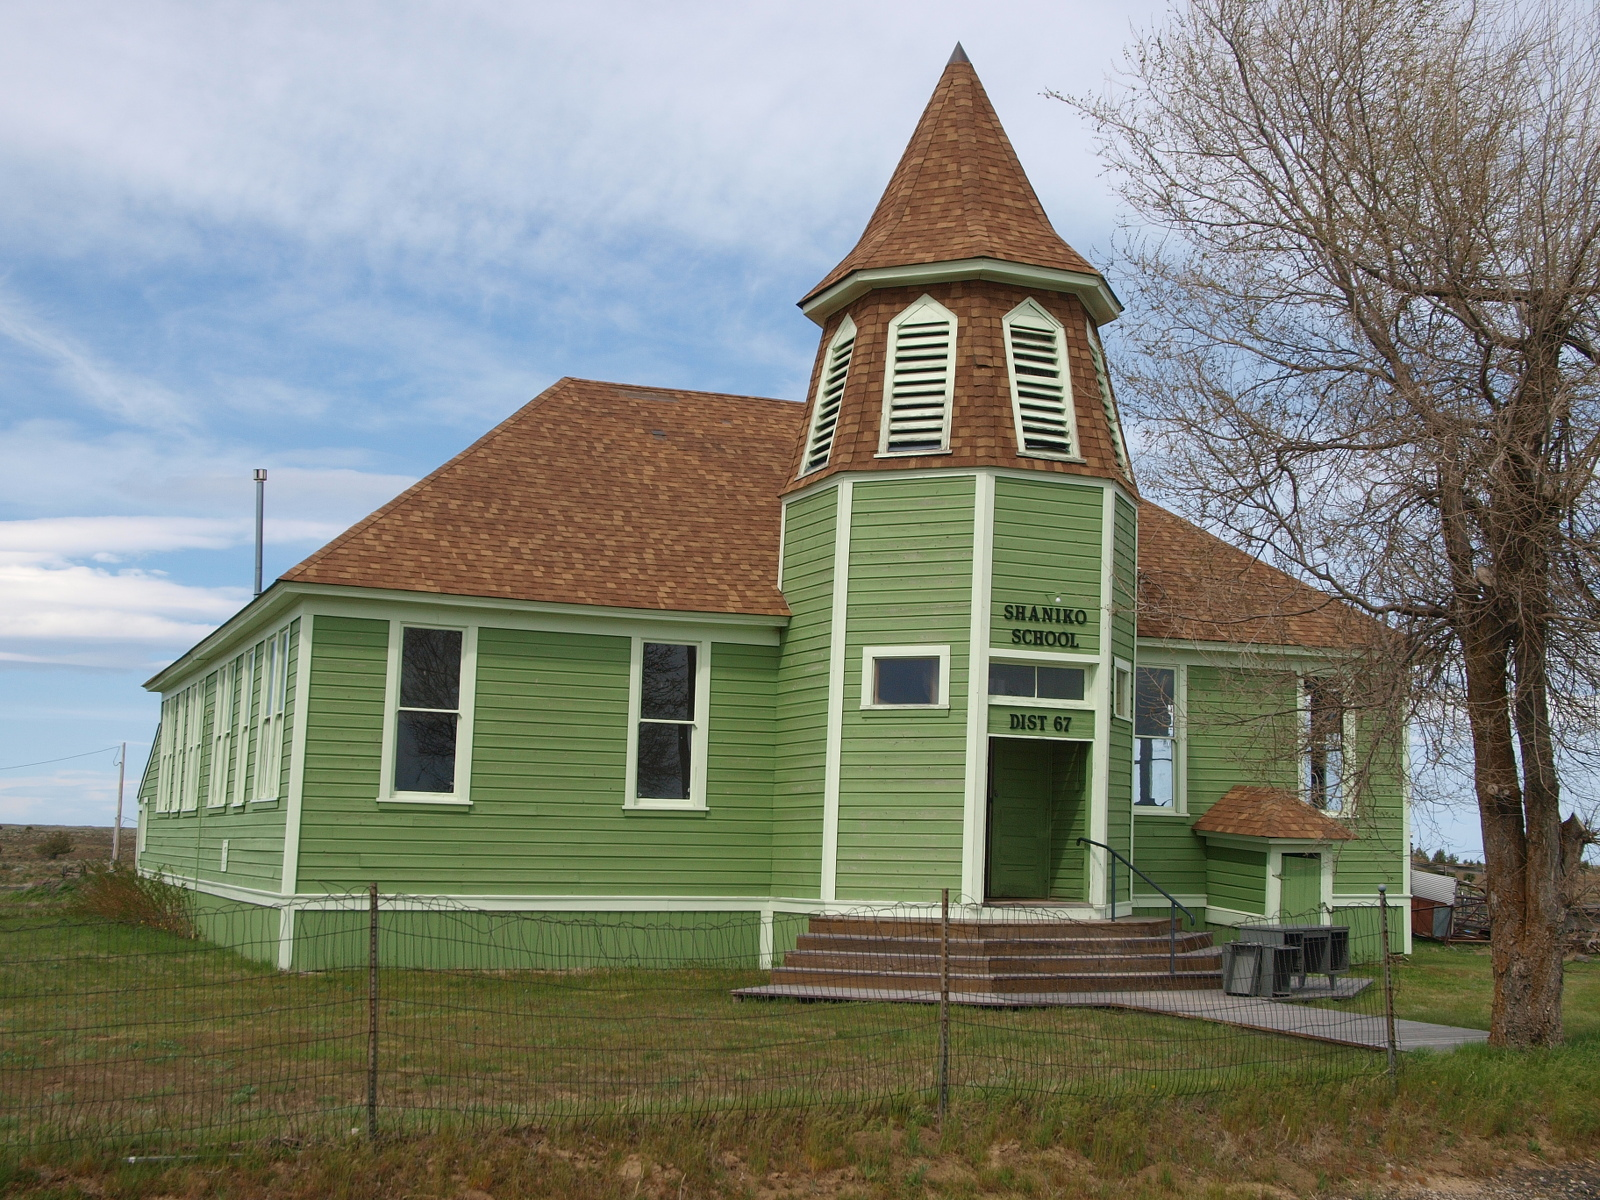 The Shaniko School House